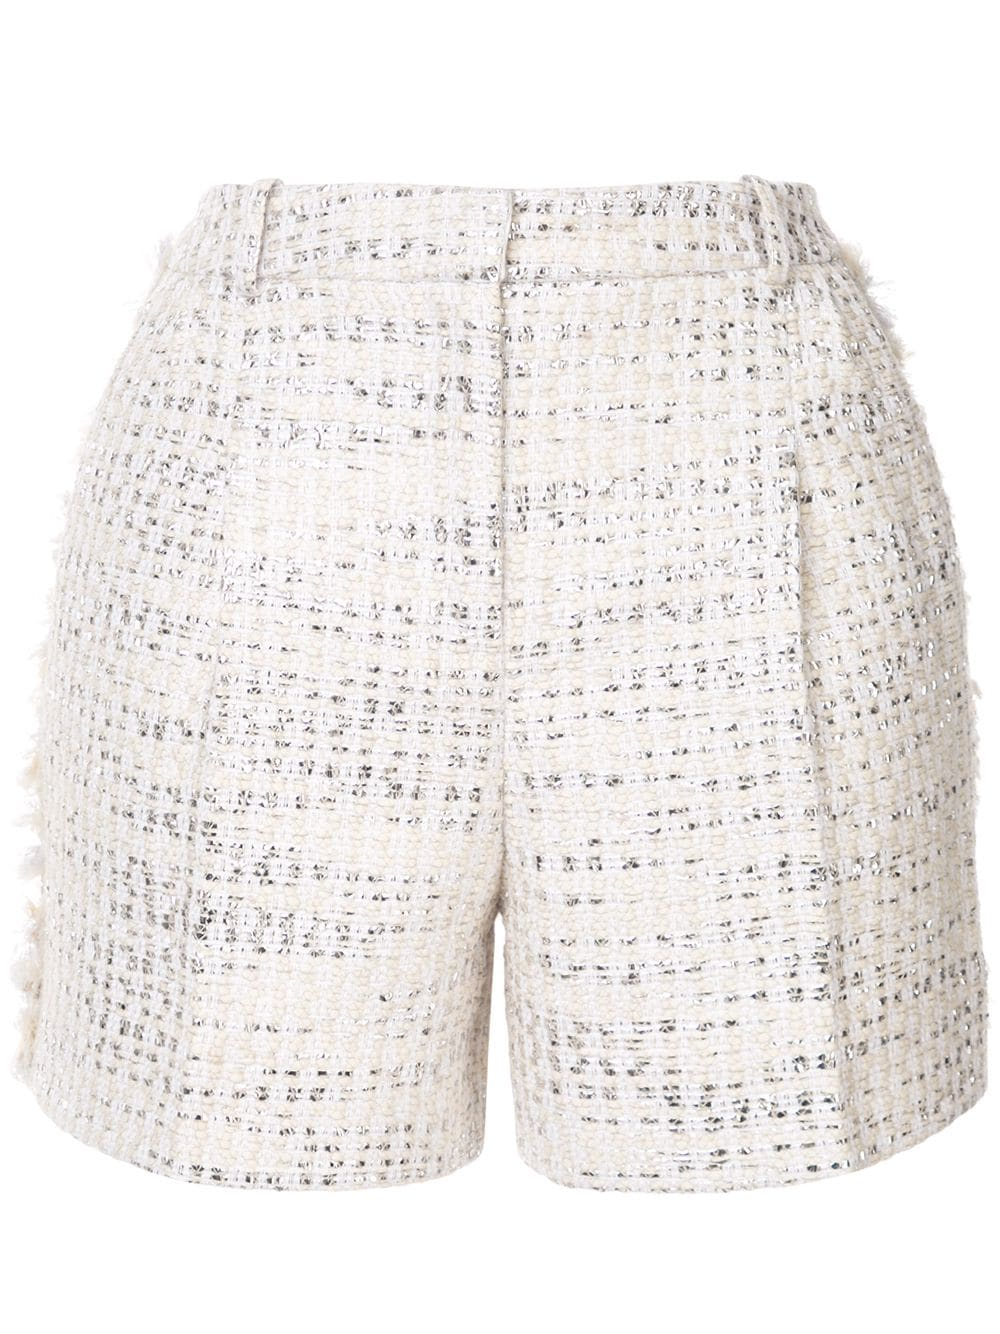 Zuhair Murad Tweed-Shorts in Metallic-Optik - Weiß